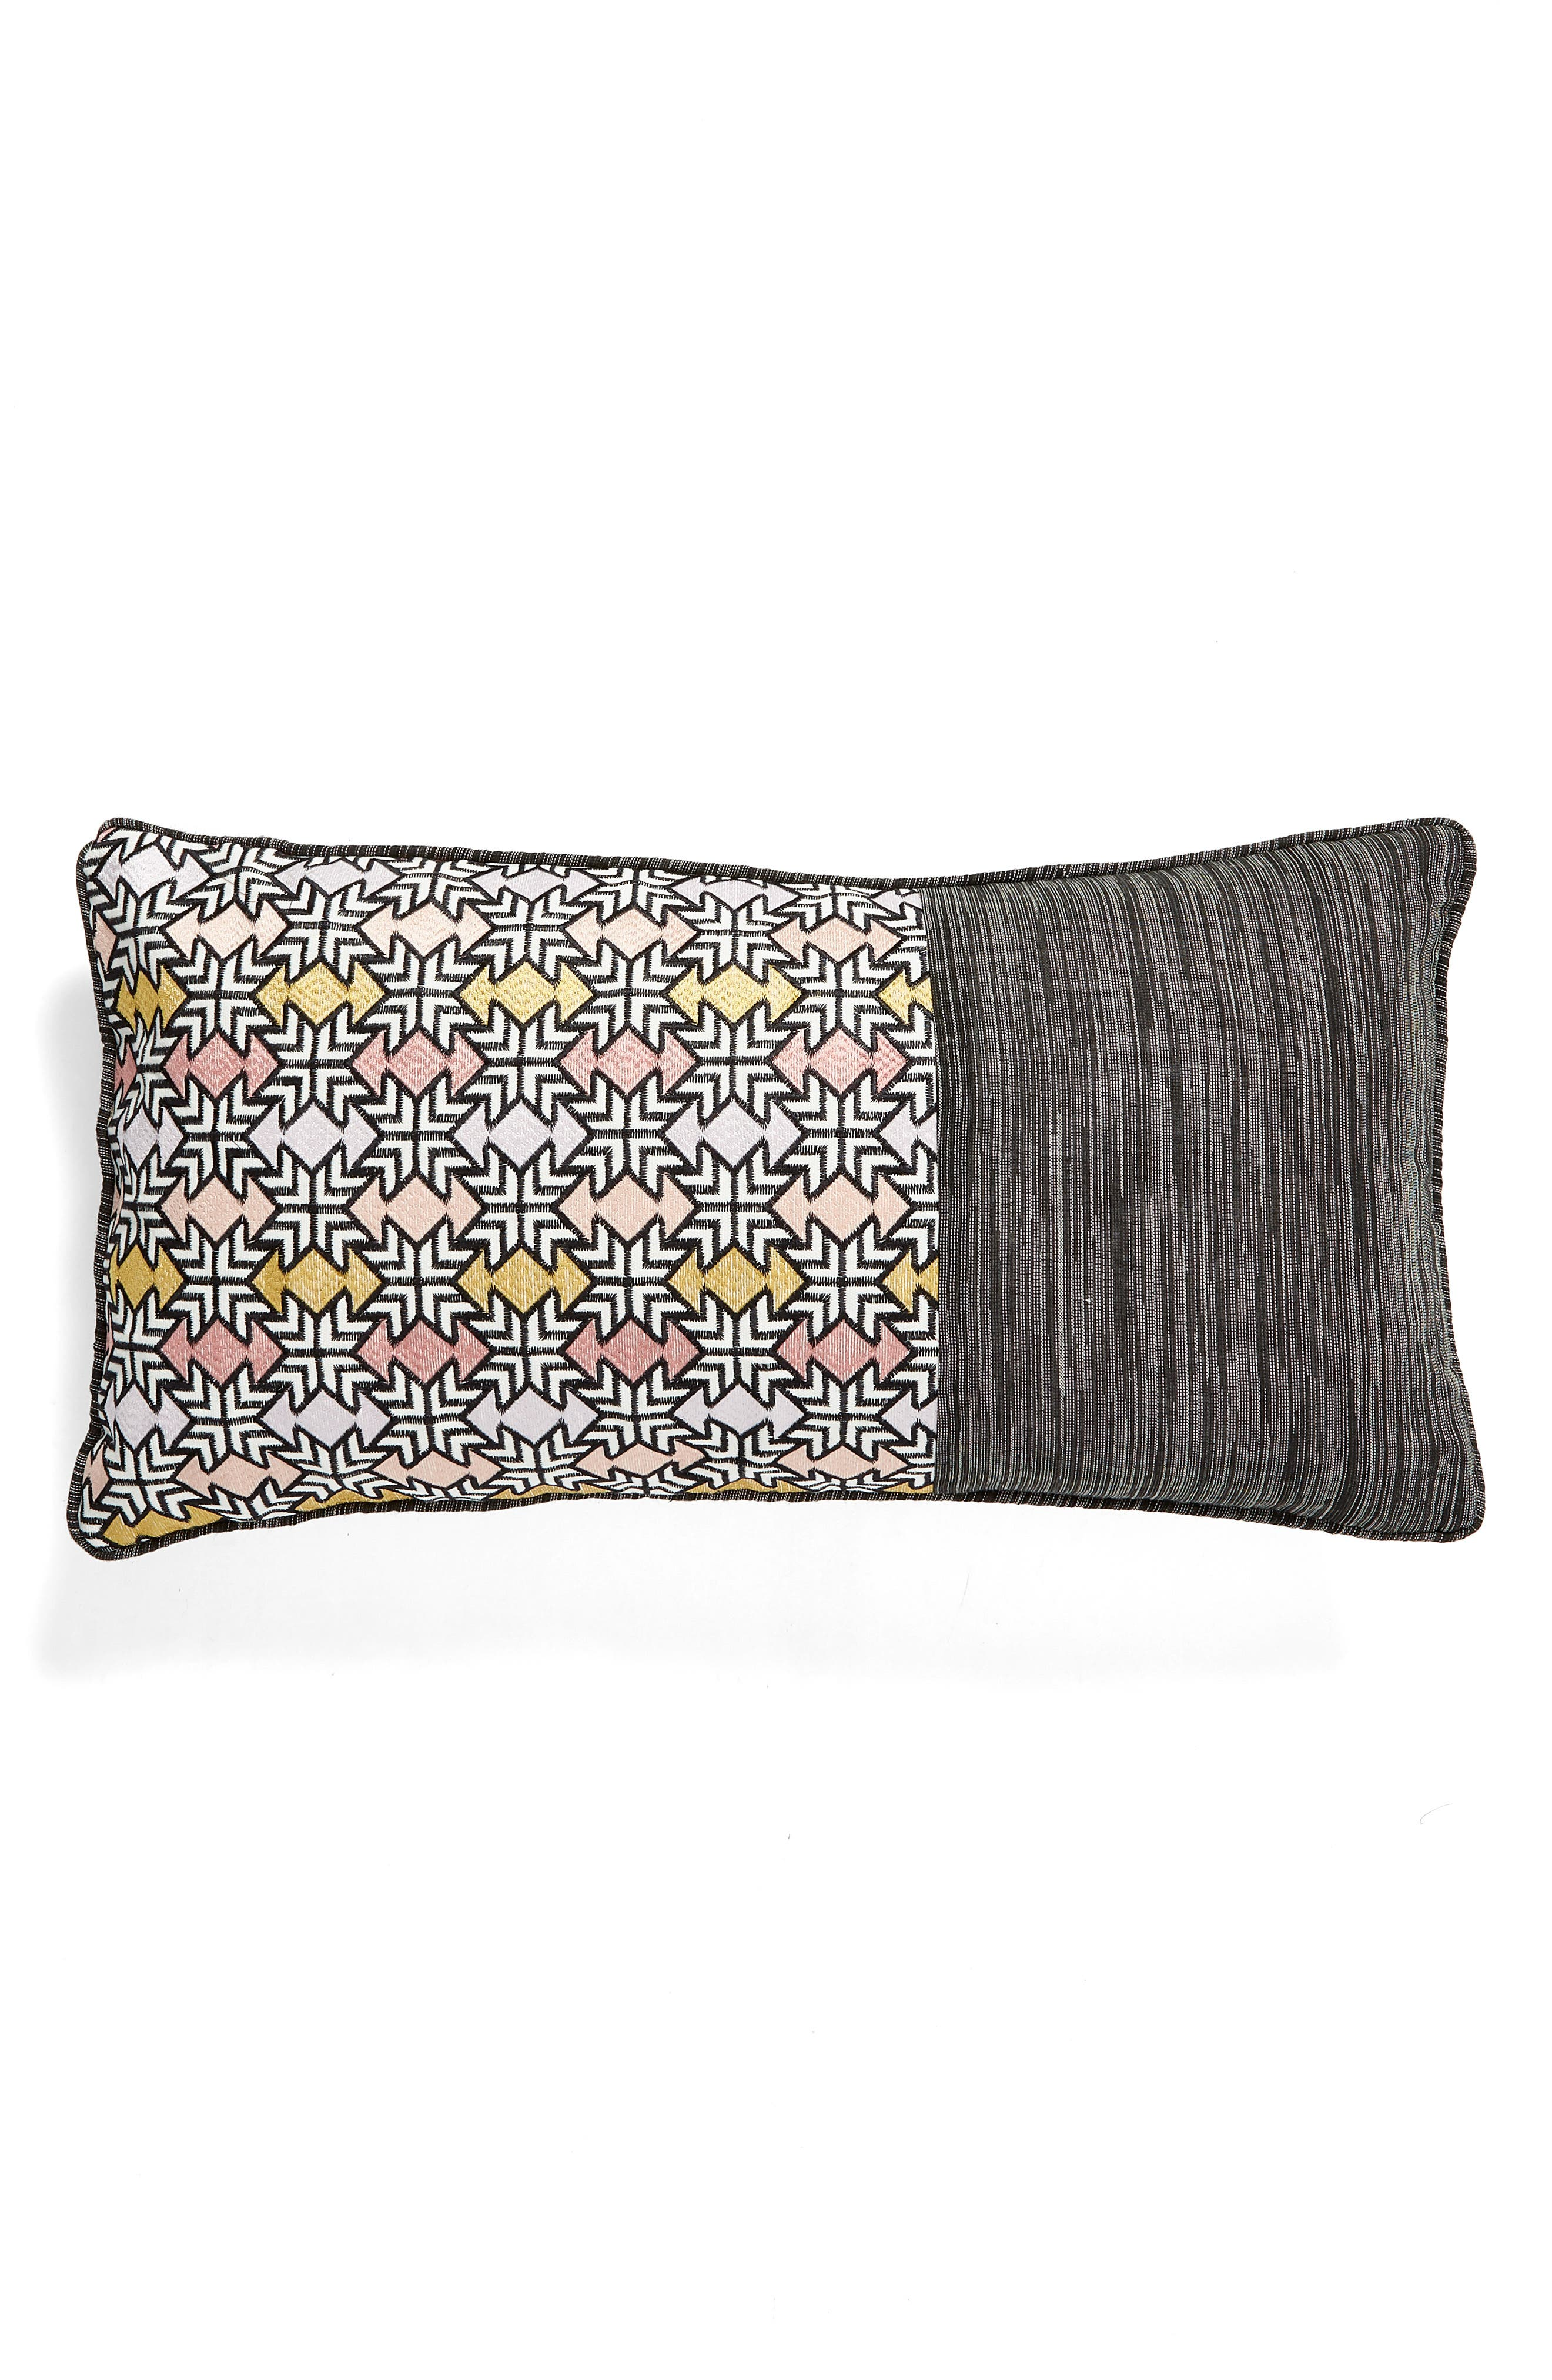 Quincy Pieced Embroidered Accent Pillow,                             Main thumbnail 1, color,                             GREY MULTI